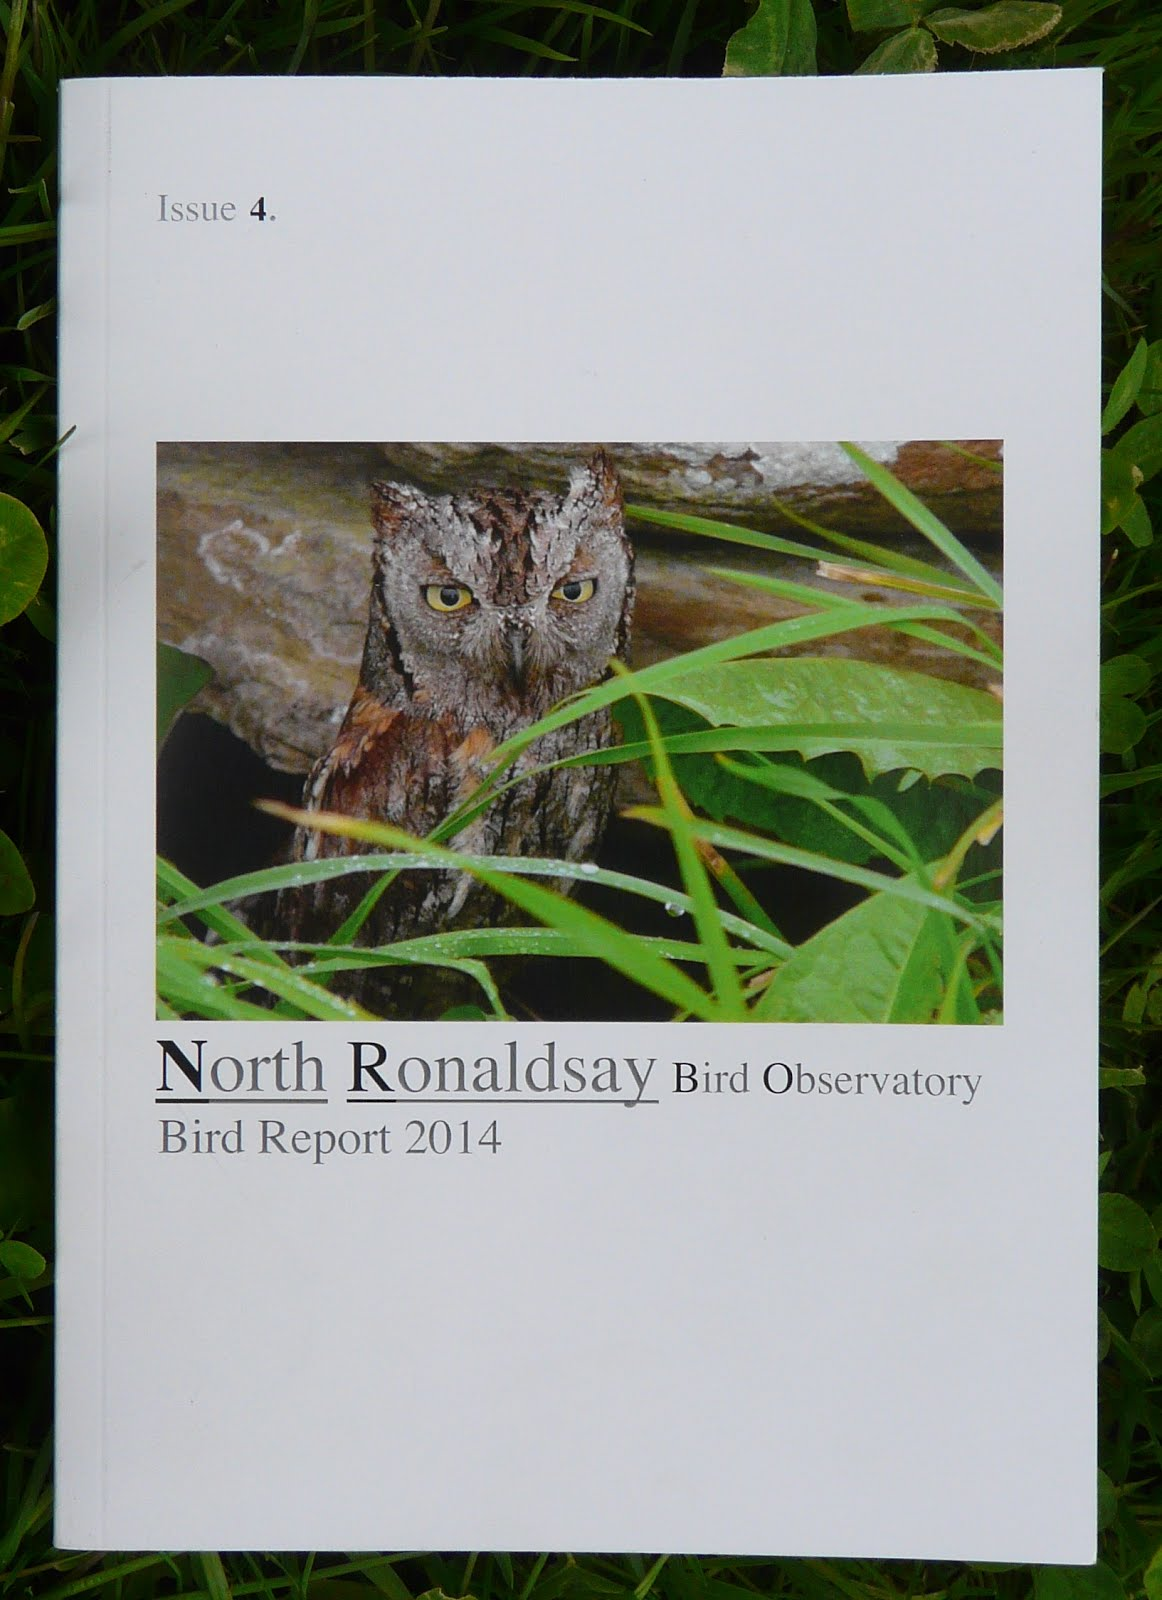 The 2014 Bird report is now available for order